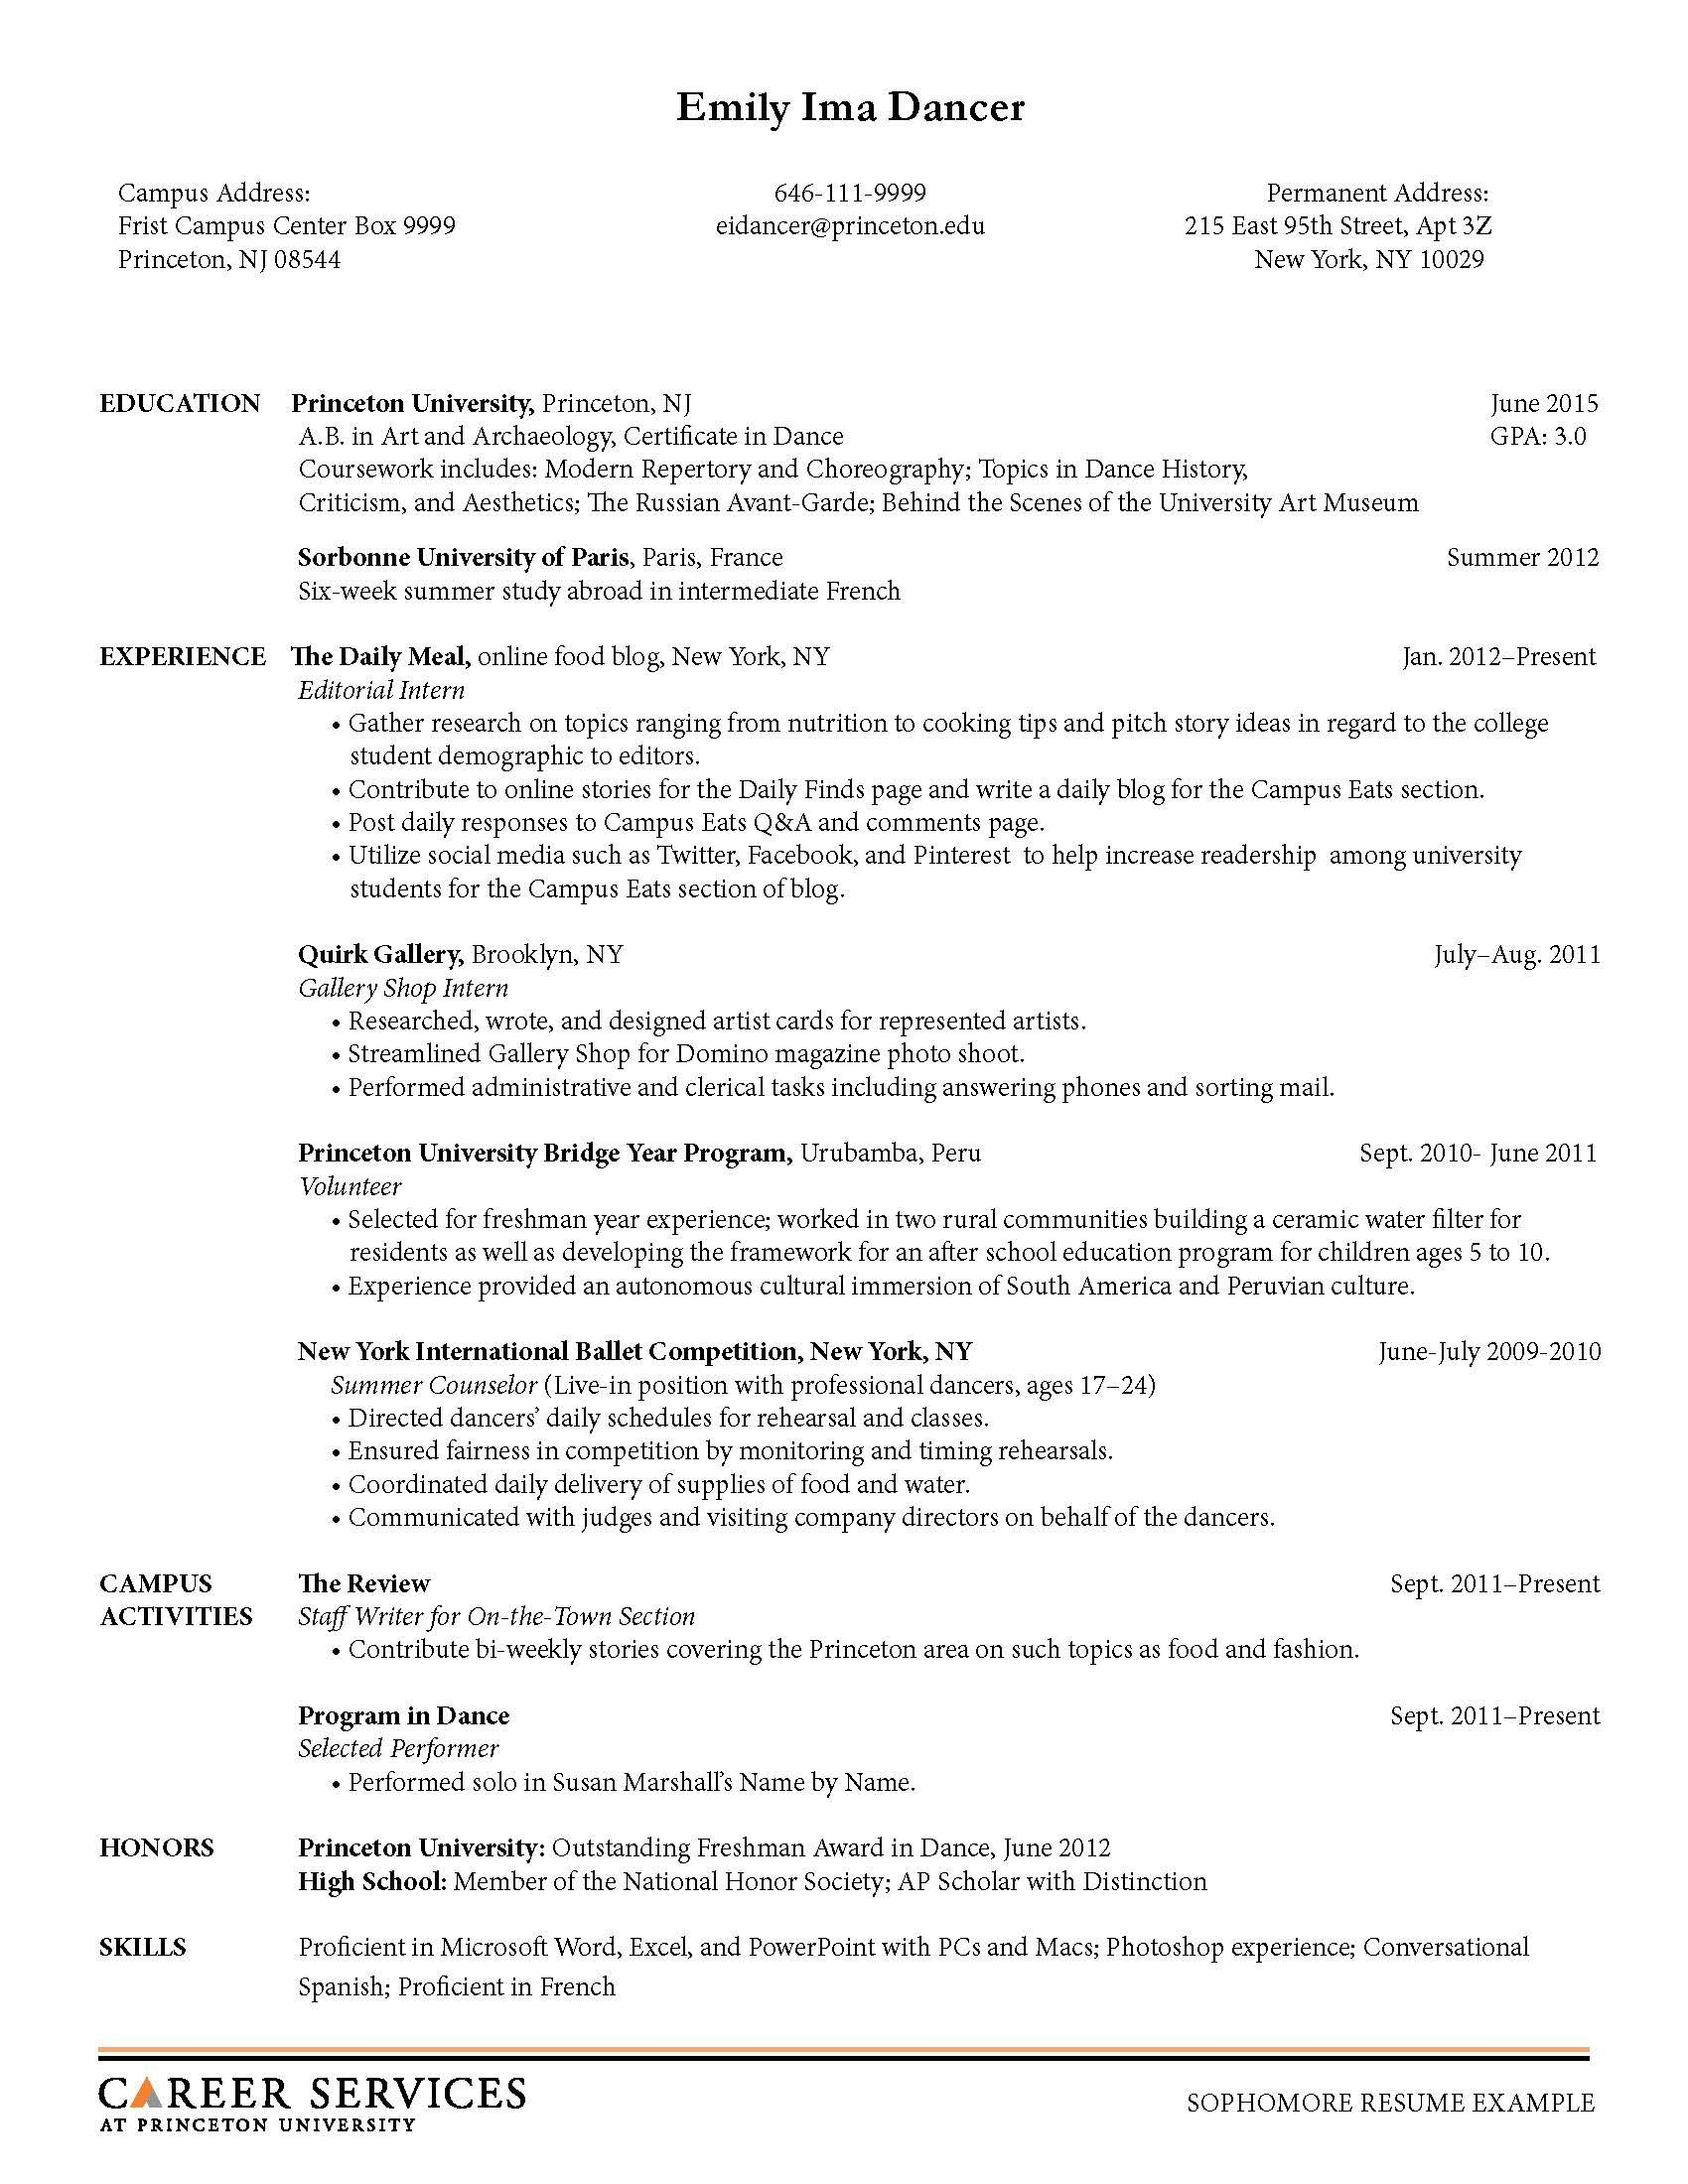 Opposenewapstandardsus  Remarkable Sample Resume Resume And Career On Pinterest With Great How To Write A Proper Resume Besides Sample Of Resumes Furthermore Resume Verb With Enchanting Resumed Meaning Also Writing A Resume Cover Letter In Addition How To List Skills On Resume And Find My Resume As Well As Free Microsoft Resume Templates Additionally Resume Template In Word From Pinterestcom With Opposenewapstandardsus  Great Sample Resume Resume And Career On Pinterest With Enchanting How To Write A Proper Resume Besides Sample Of Resumes Furthermore Resume Verb And Remarkable Resumed Meaning Also Writing A Resume Cover Letter In Addition How To List Skills On Resume From Pinterestcom